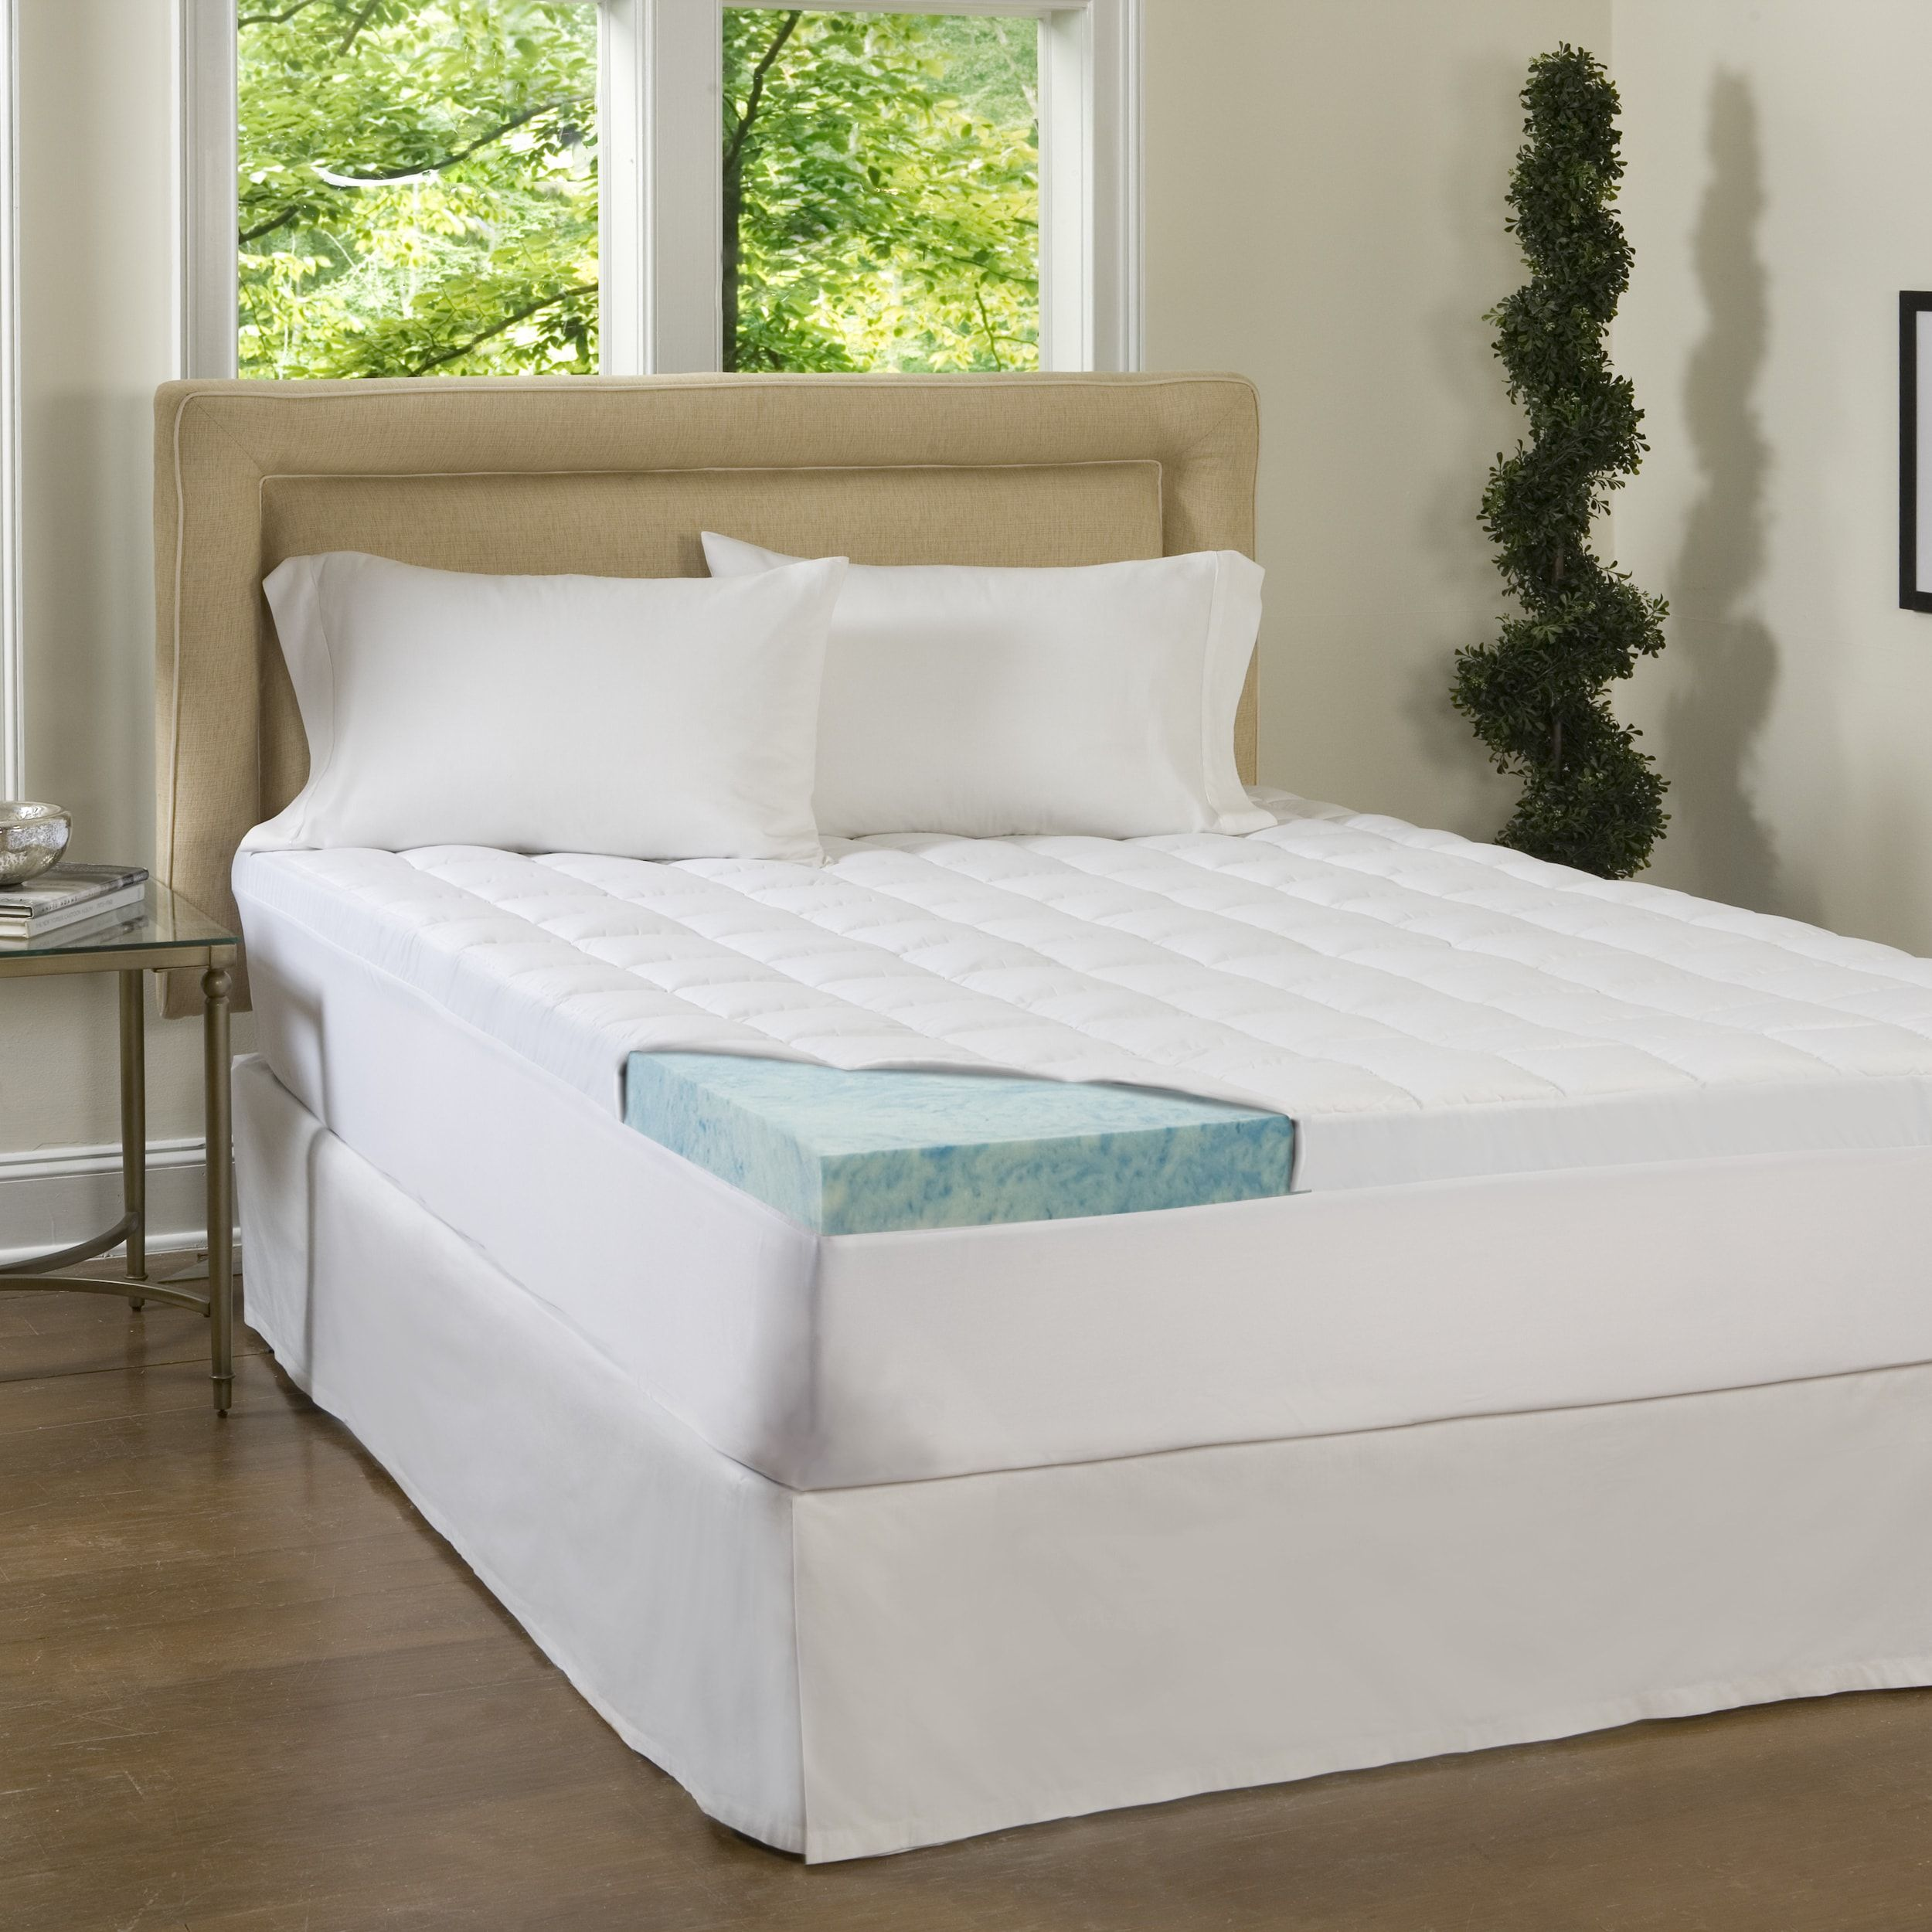 Beautyrest 4inch Supreme Gel Memory Foam and 1.5inch